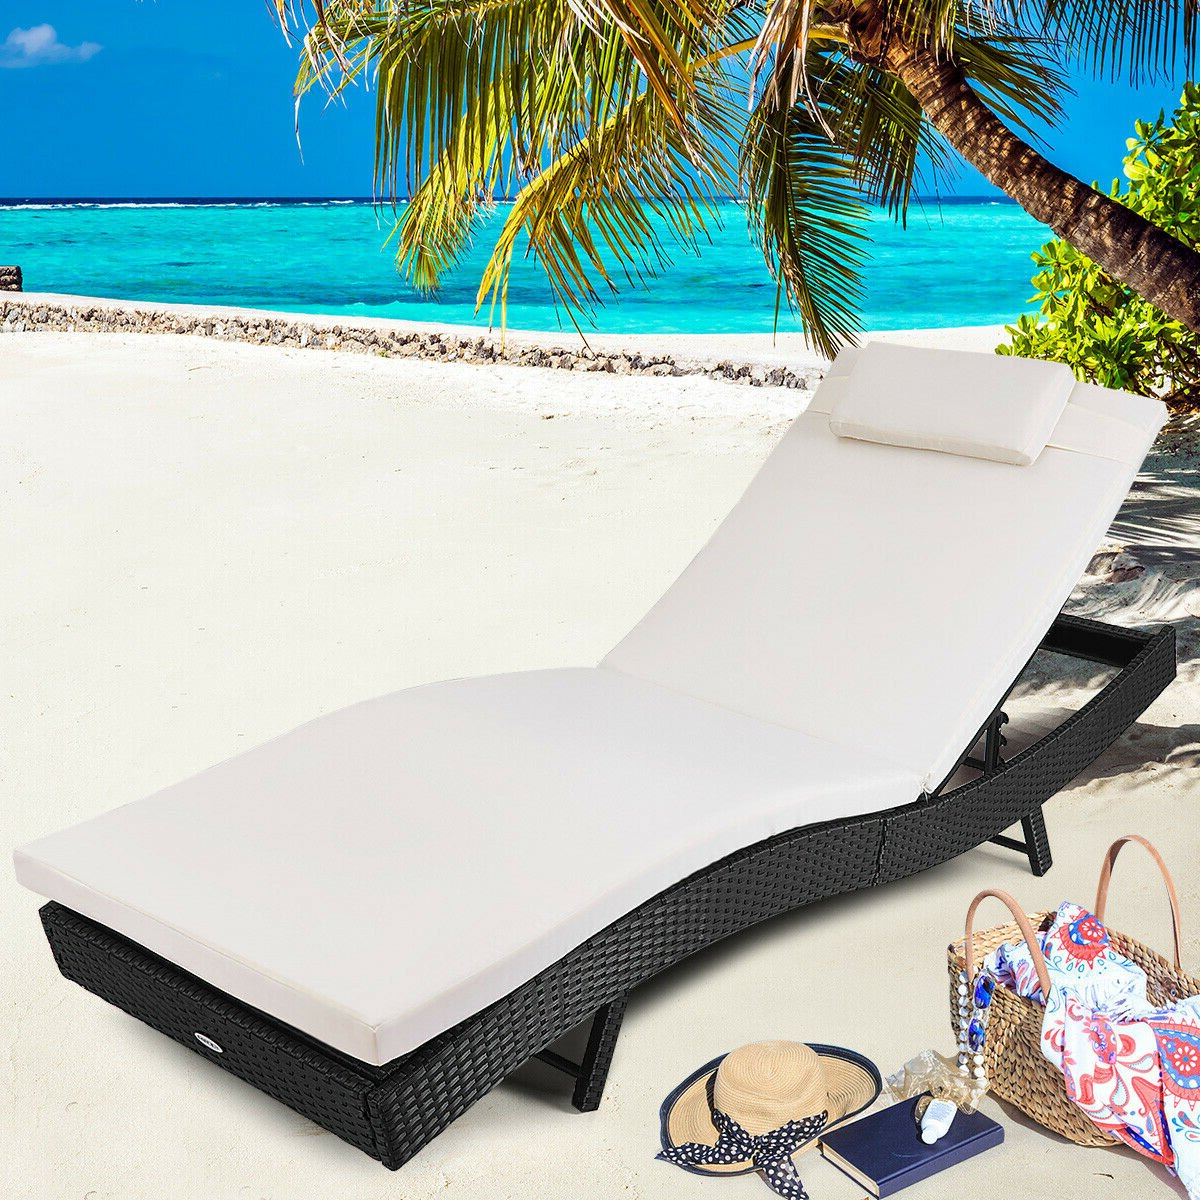 Costway Adjustable Pool Chaise Lounge Chair Outdoor Patio Furniture Pe  Wicker W/cushion Within Widely Used Outdoor Wicker Adjustable Chaise Lounges With Cushions (View 4 of 25)